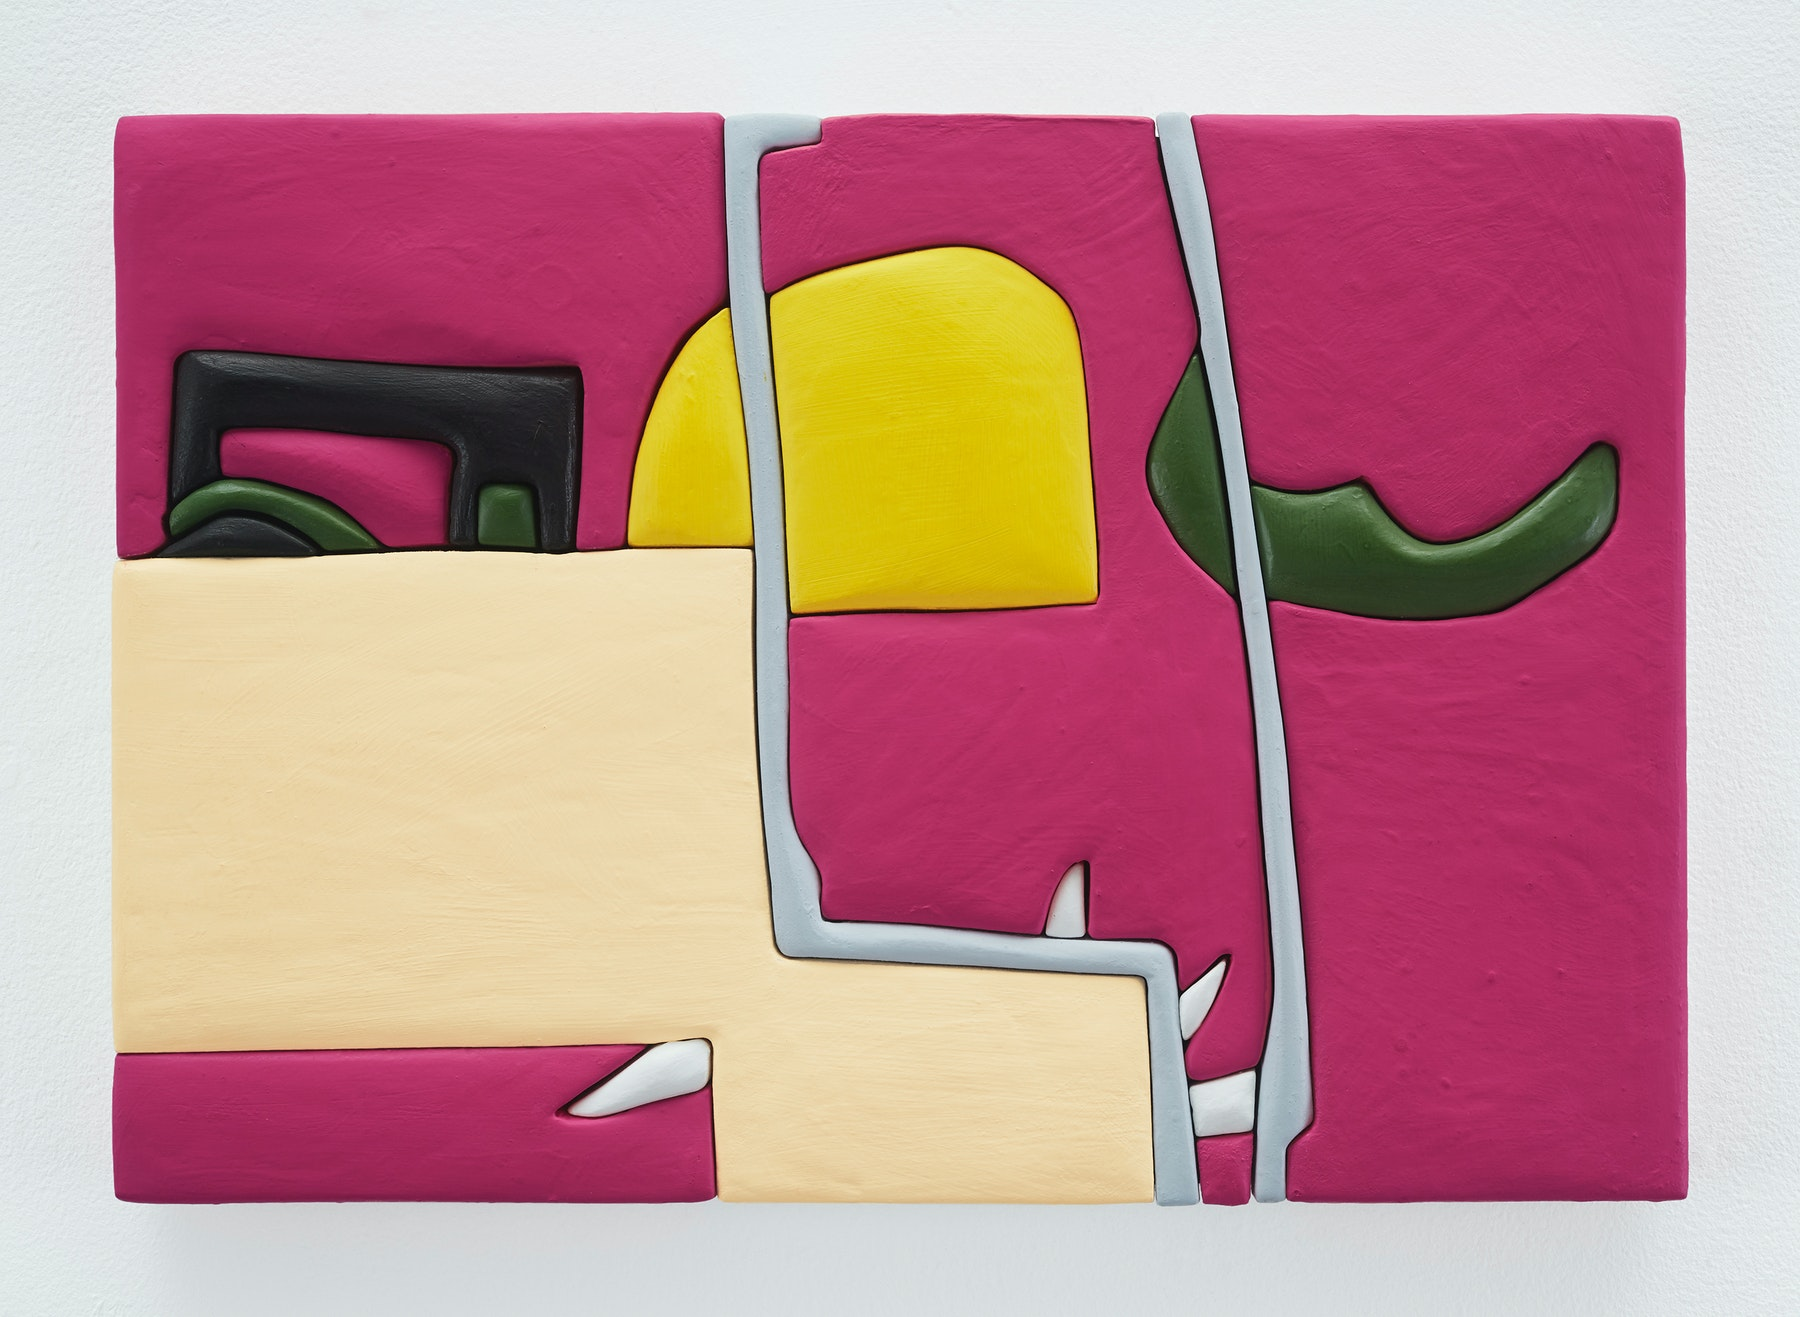 """Sadie Benning """"Untitled 11x16 (SS),"""" 2019 Wood, aqua resin, casein, and acrylic gouache 11 x 16"""" [HxW] (27.94 x 40.64 cm) Inventory #BEN846 Courtesy of the artist and Vielmetter Los Angeles Photocredit: Chris Austin"""